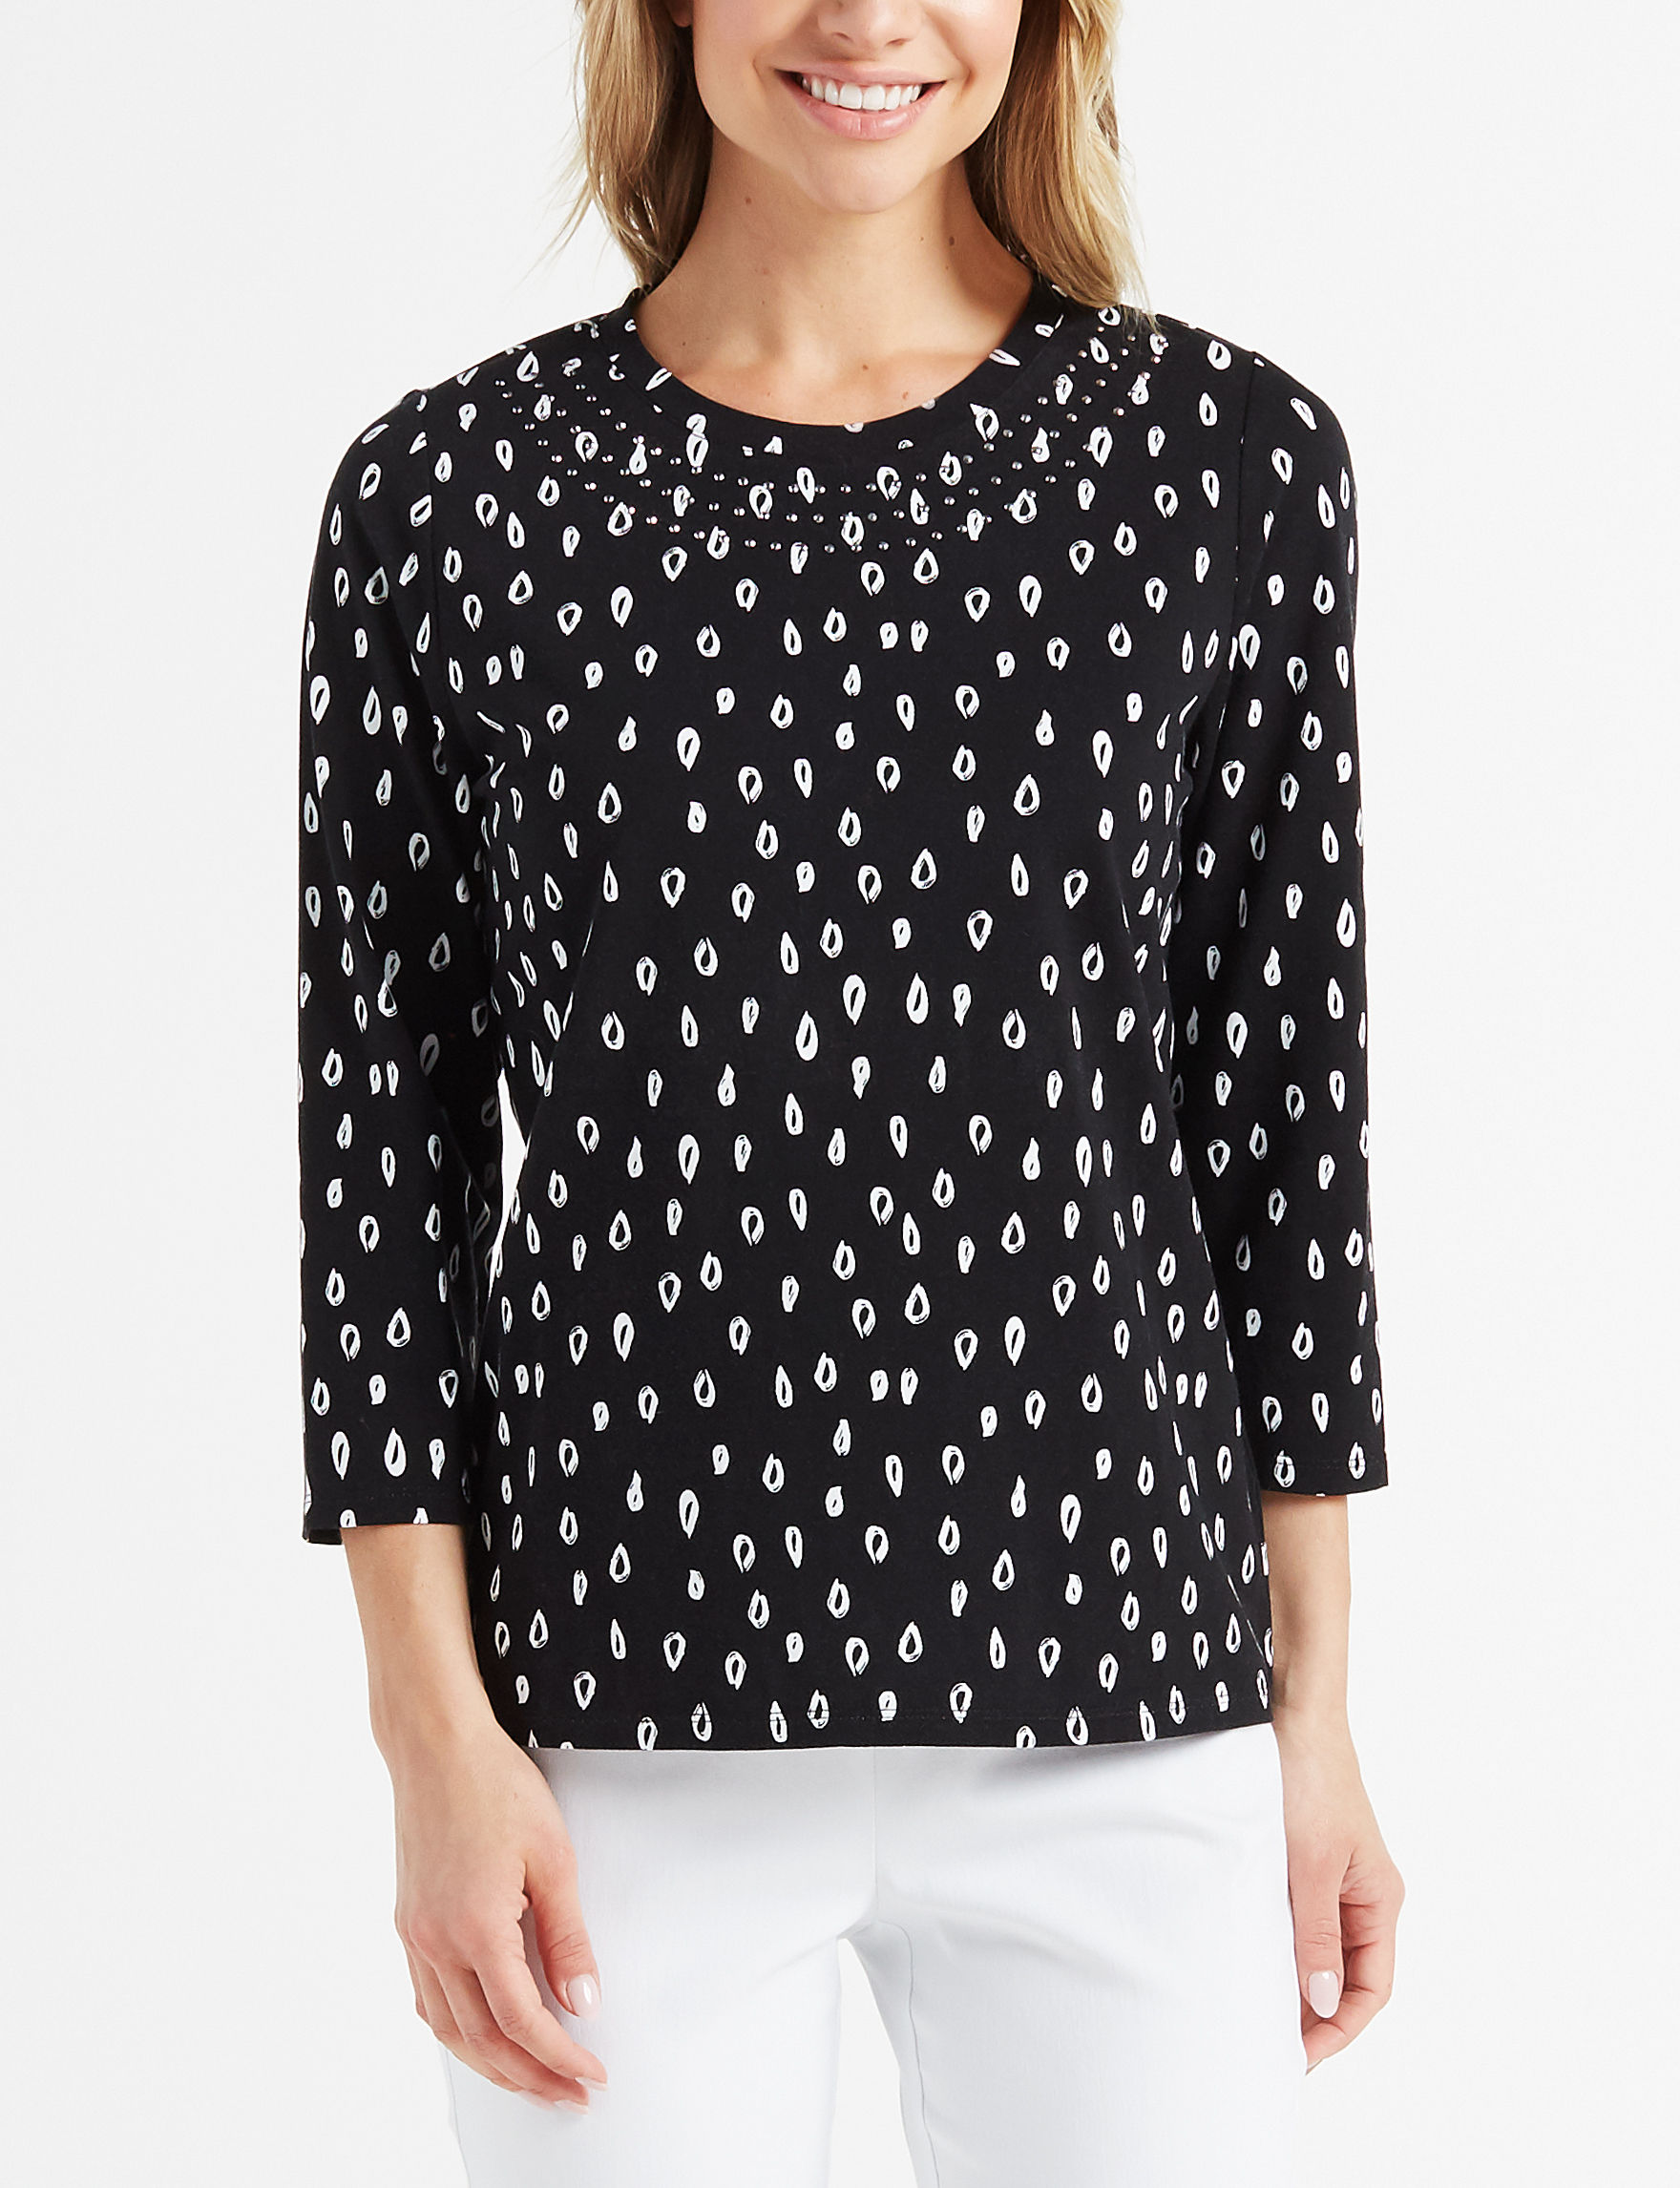 Rafaella Black / White Shirts & Blouses